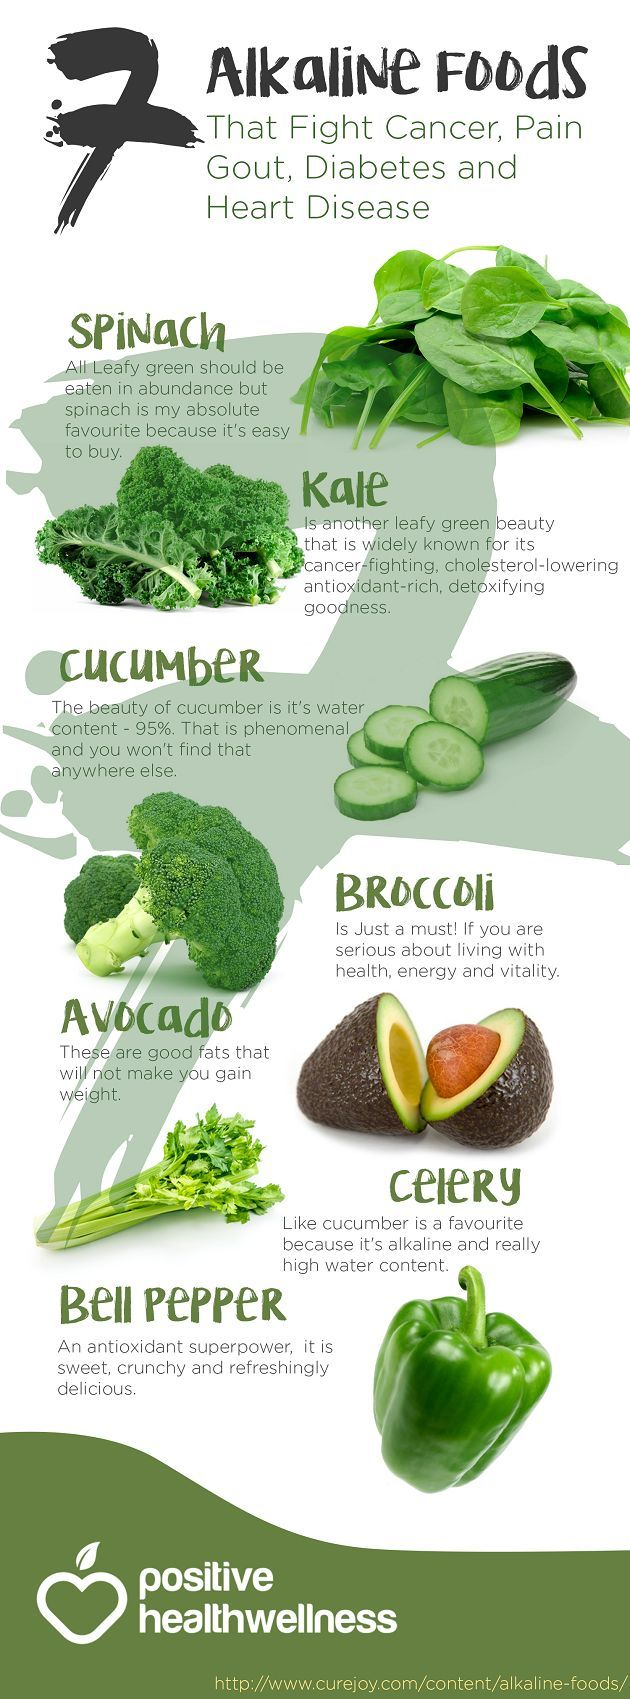 7 Alkaline Foods that Fight Cancer, Pain, Gout, Diabetes and Heart Disease – Positive Health Wellness Infographic